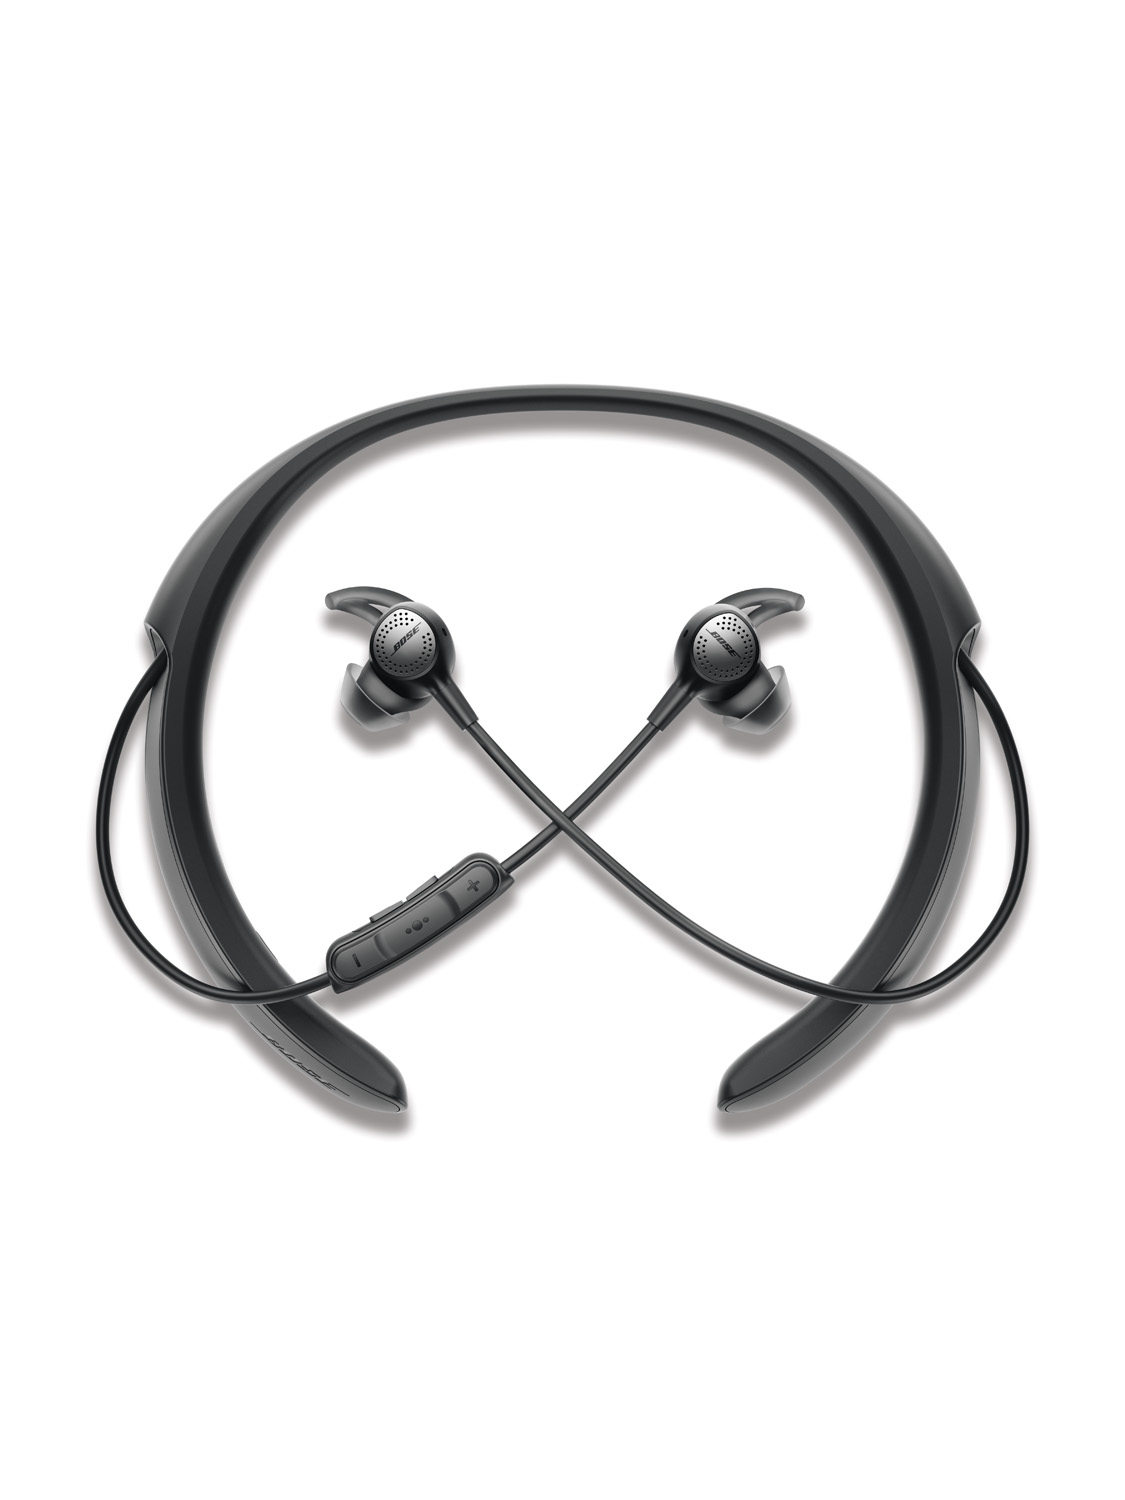 QuietControl 30 wireless headphones -Black 2